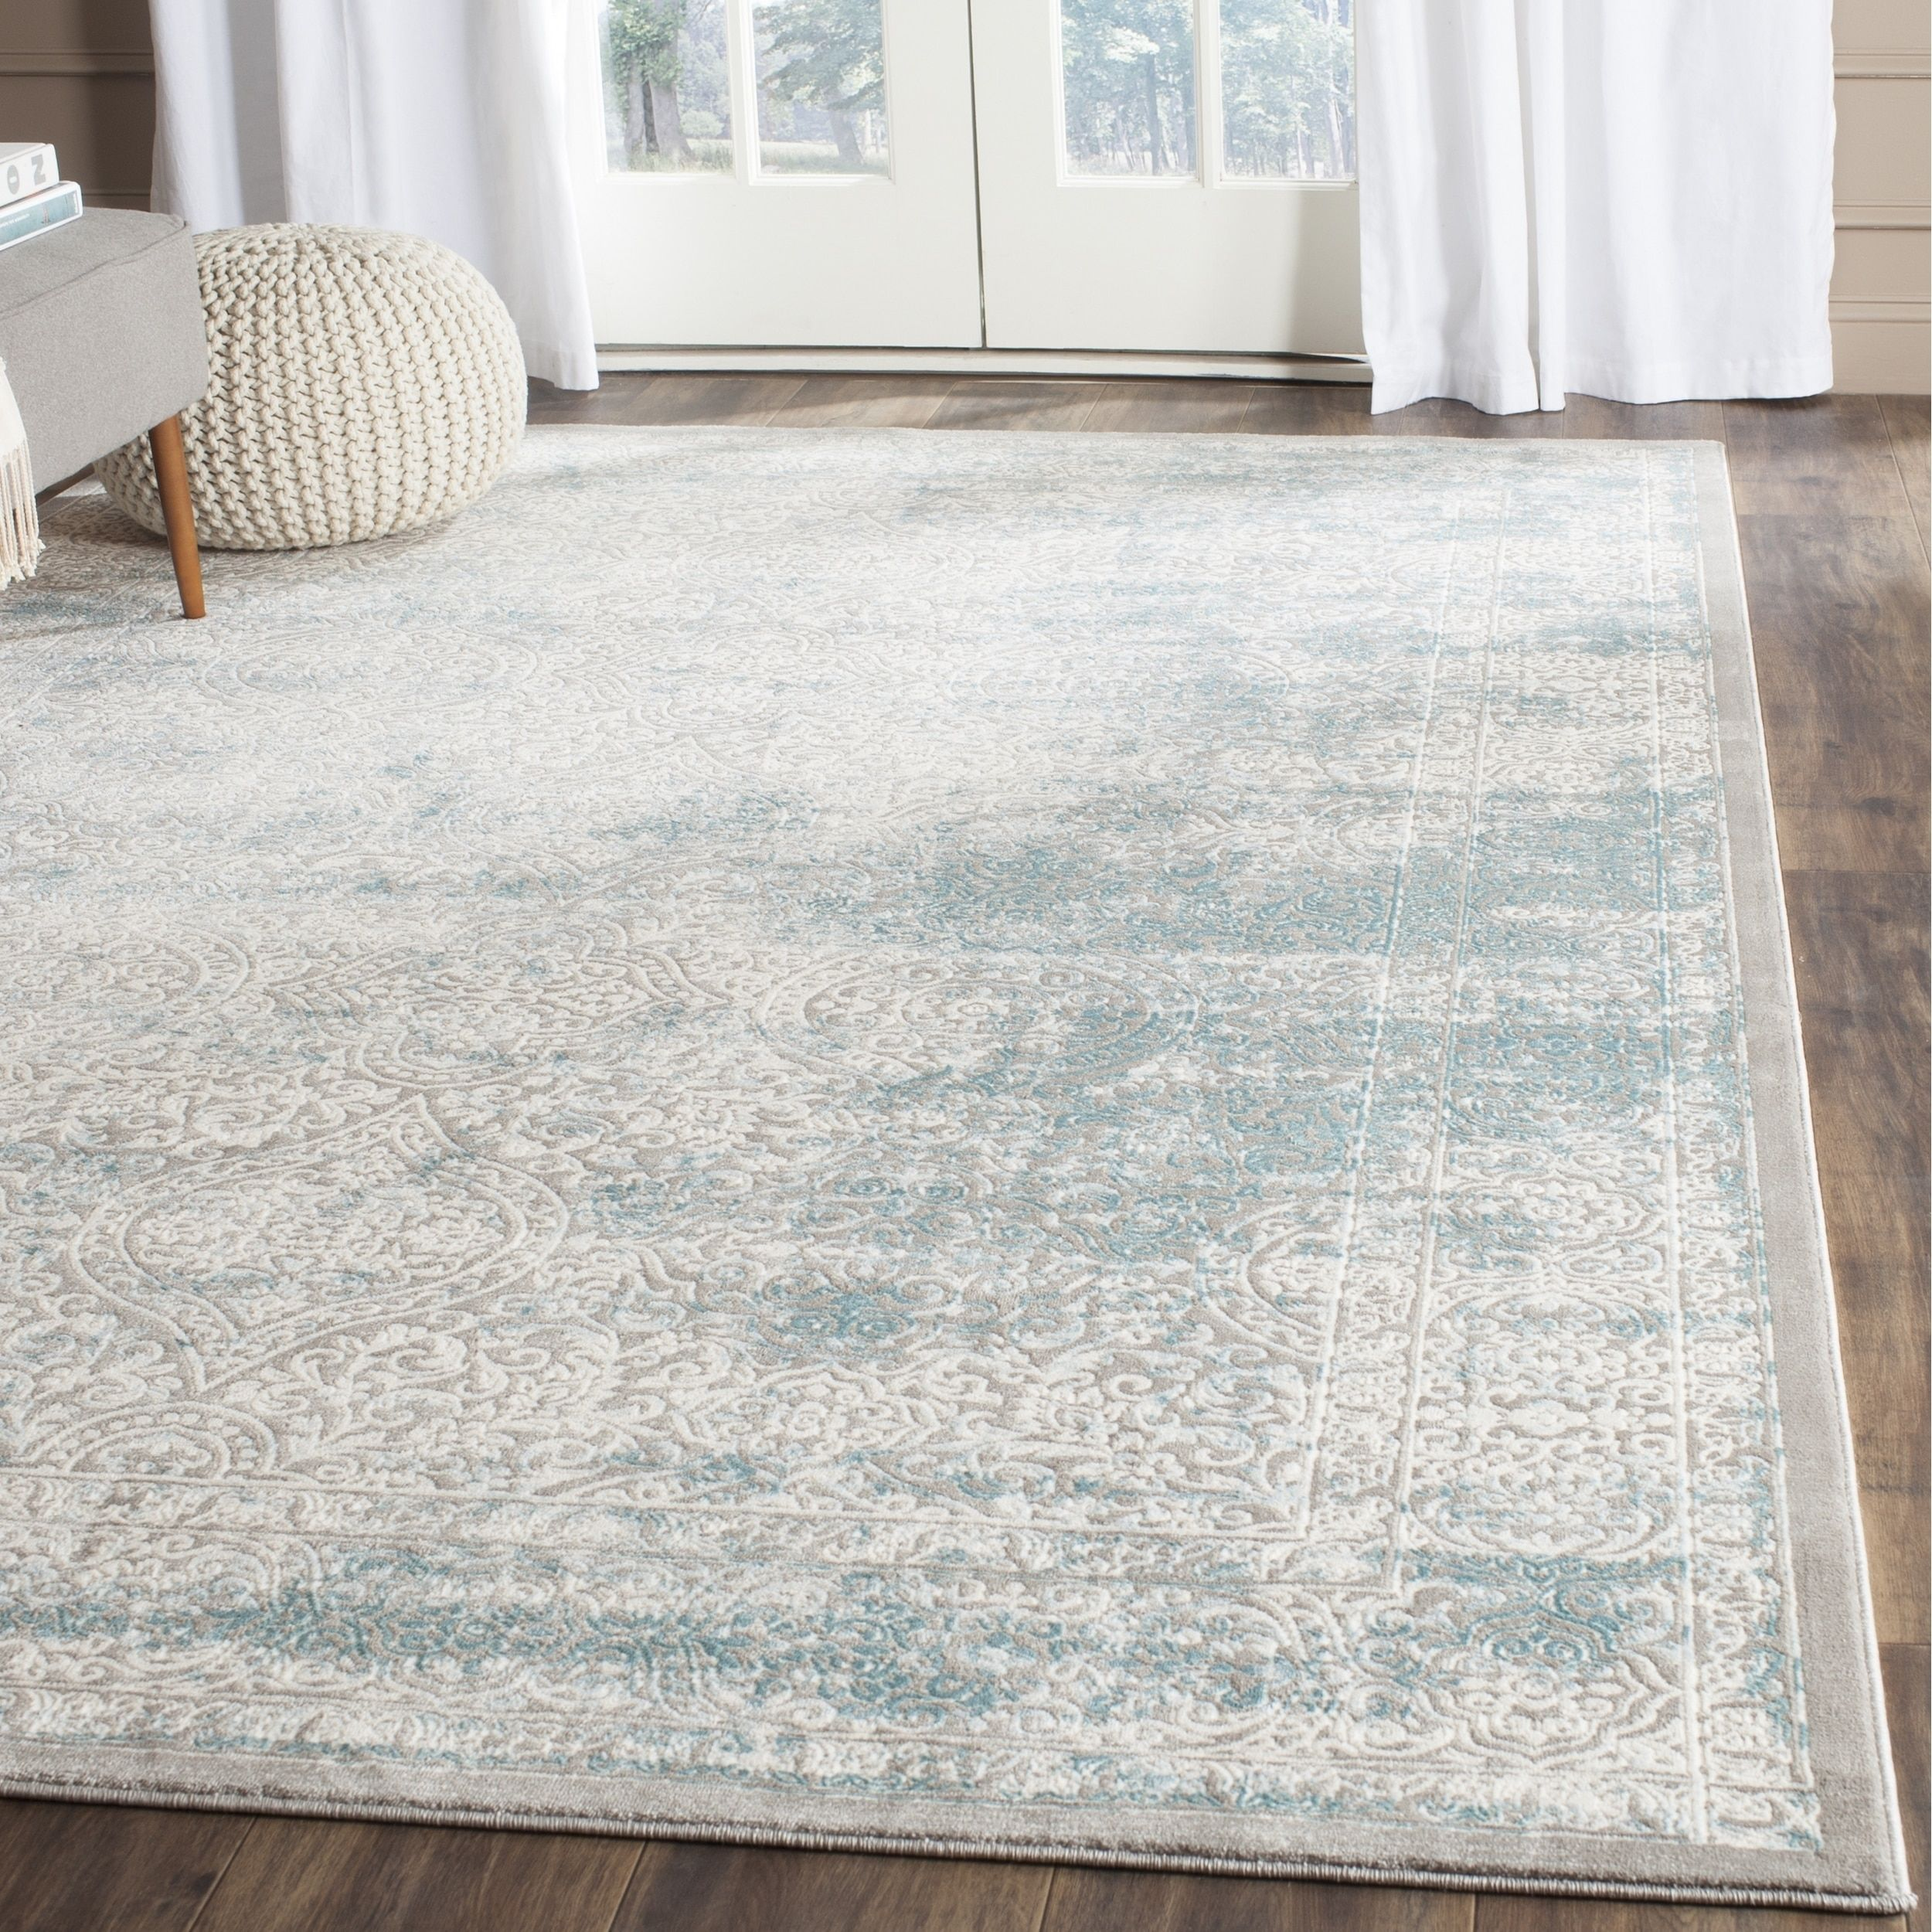 Safavieh Passion Watercolor Vintage Turquoise Ivory Rug 10 X 14